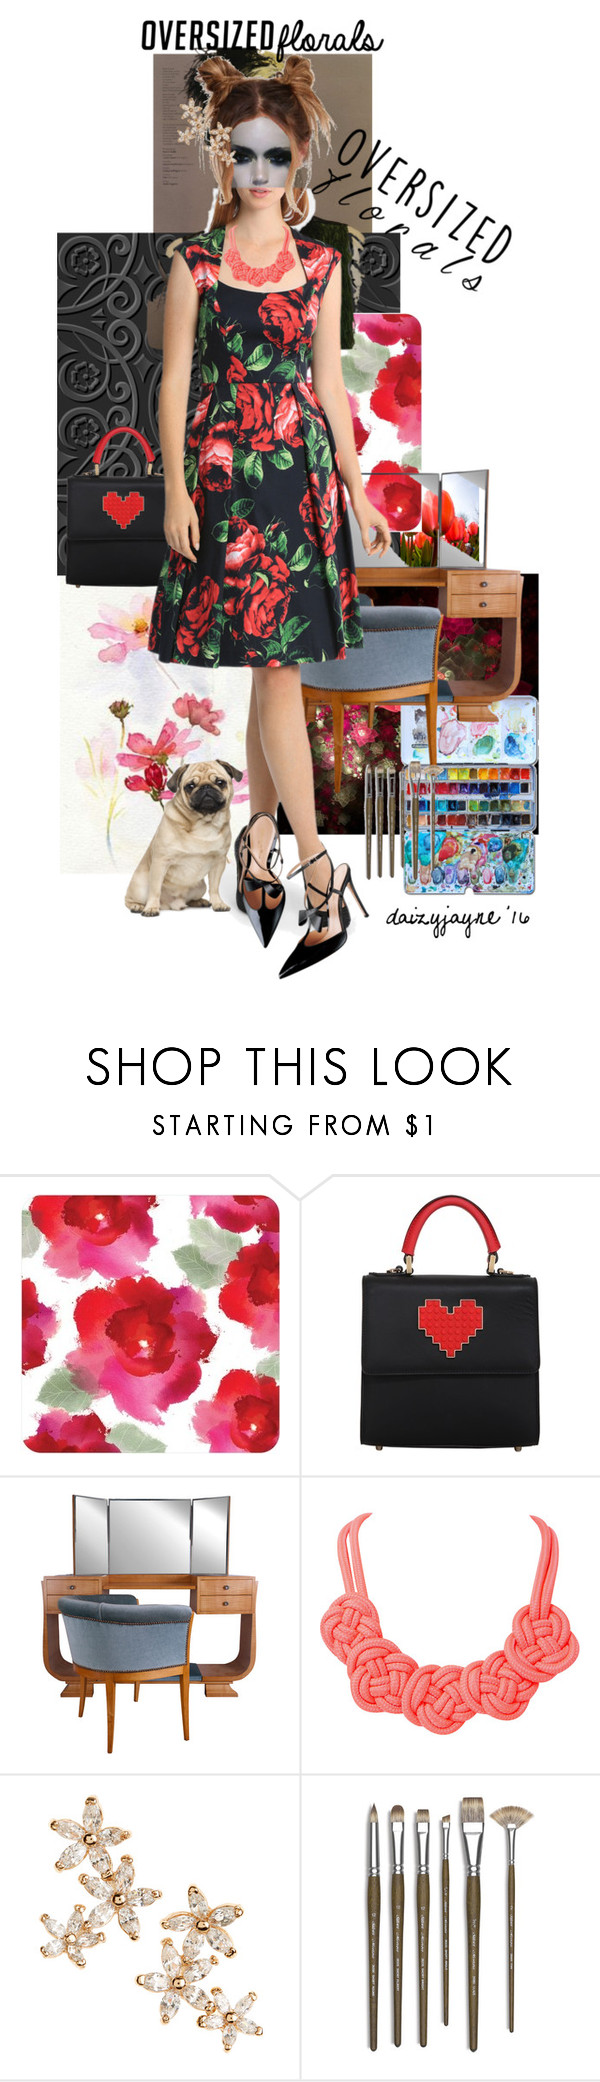 """floral in red & black"" by daizyjayne ❤ liked on Polyvore featuring Rene, Les Petits Joueurs, Humble Chic, Bonheur, Monza, contestentry, leonaedmiston and oversizedflorals"